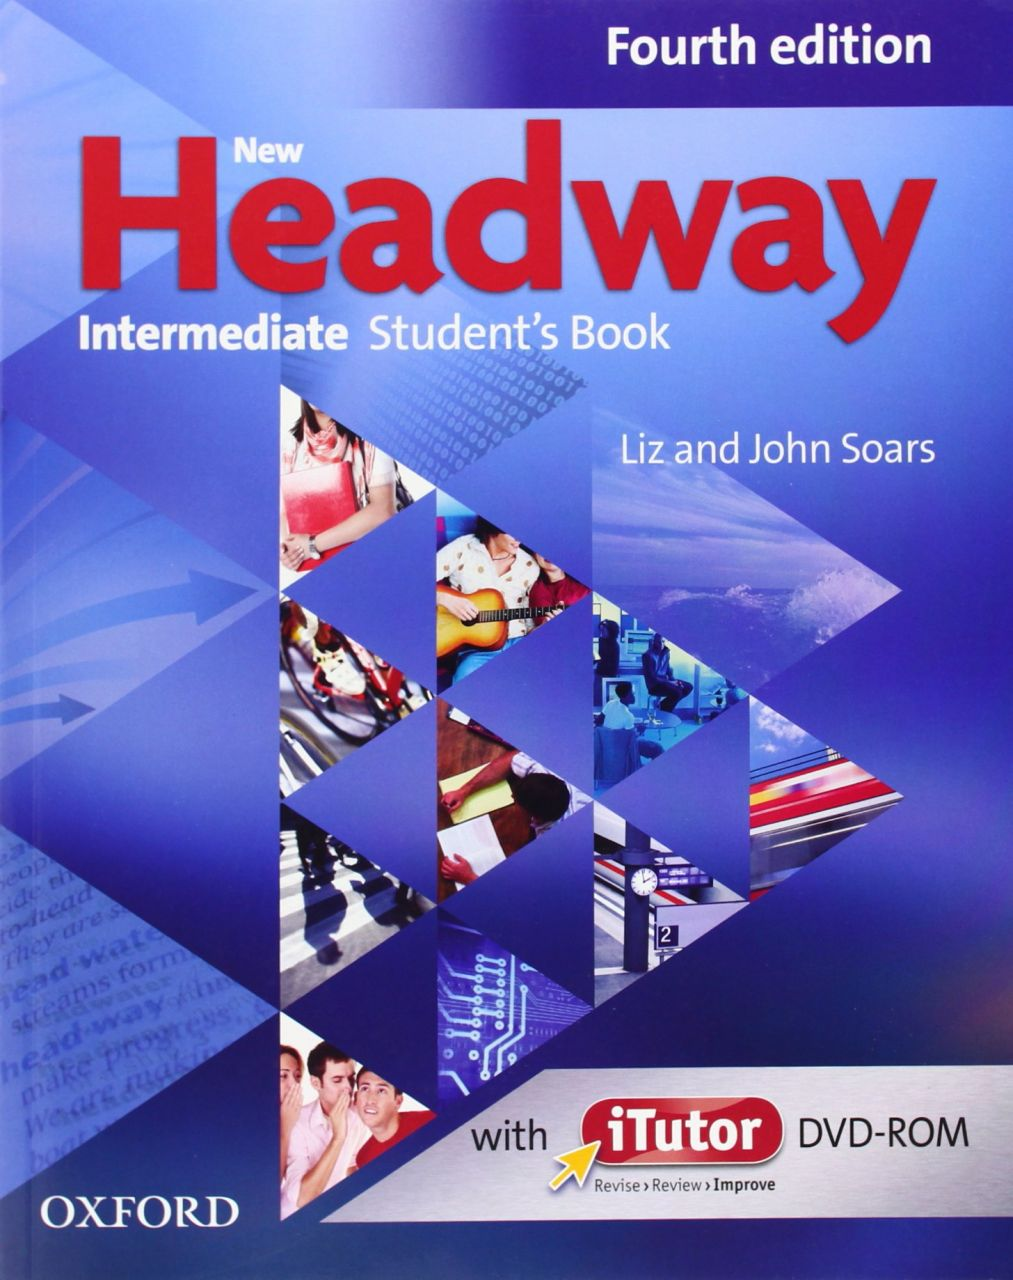 NEW HEADWAY INTERMEDIATE 4th ED Student's Book with iTutor DVD-ROM